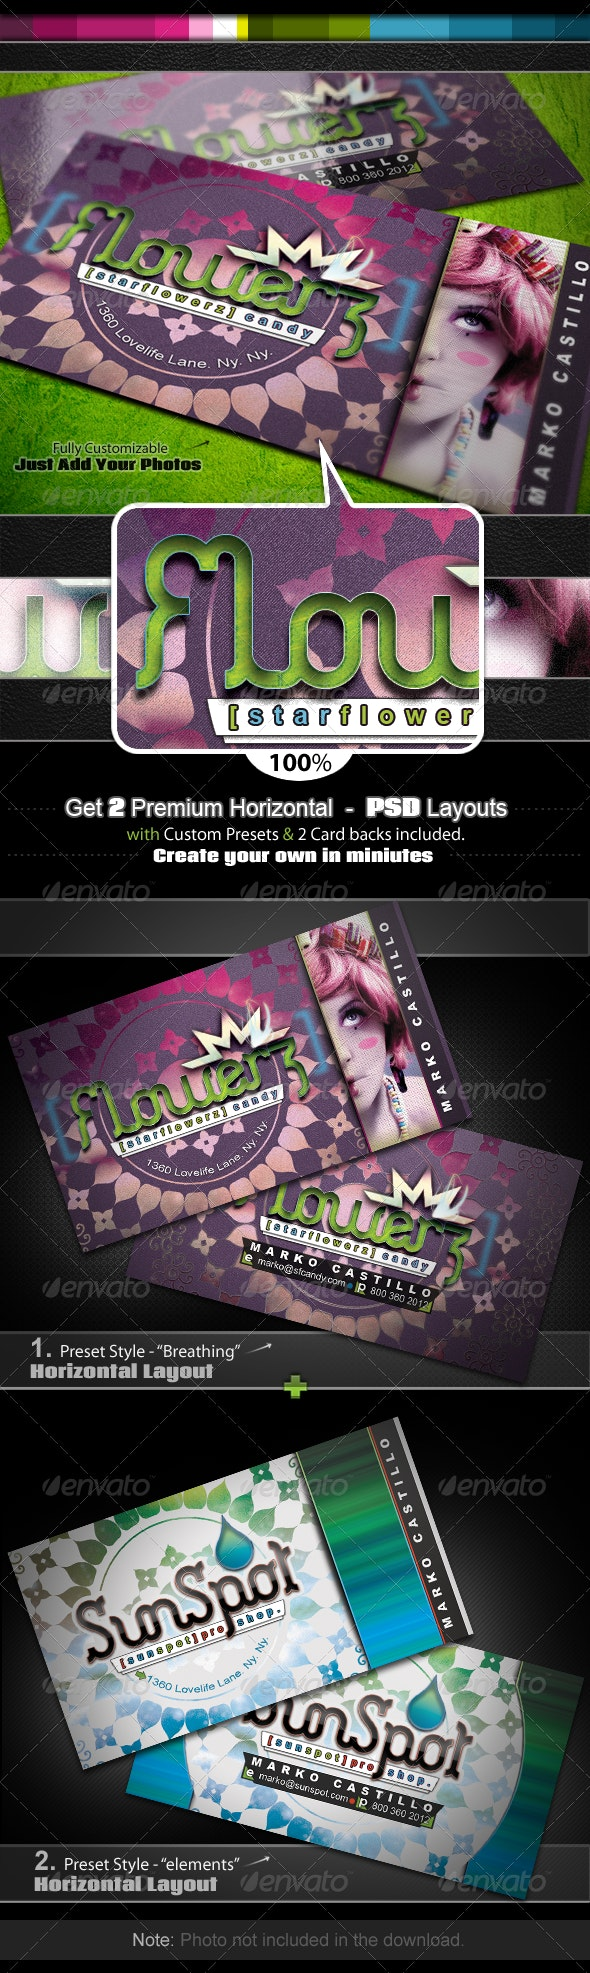 Flowerz Candy - Business Card Set - Industry Specific Business Cards